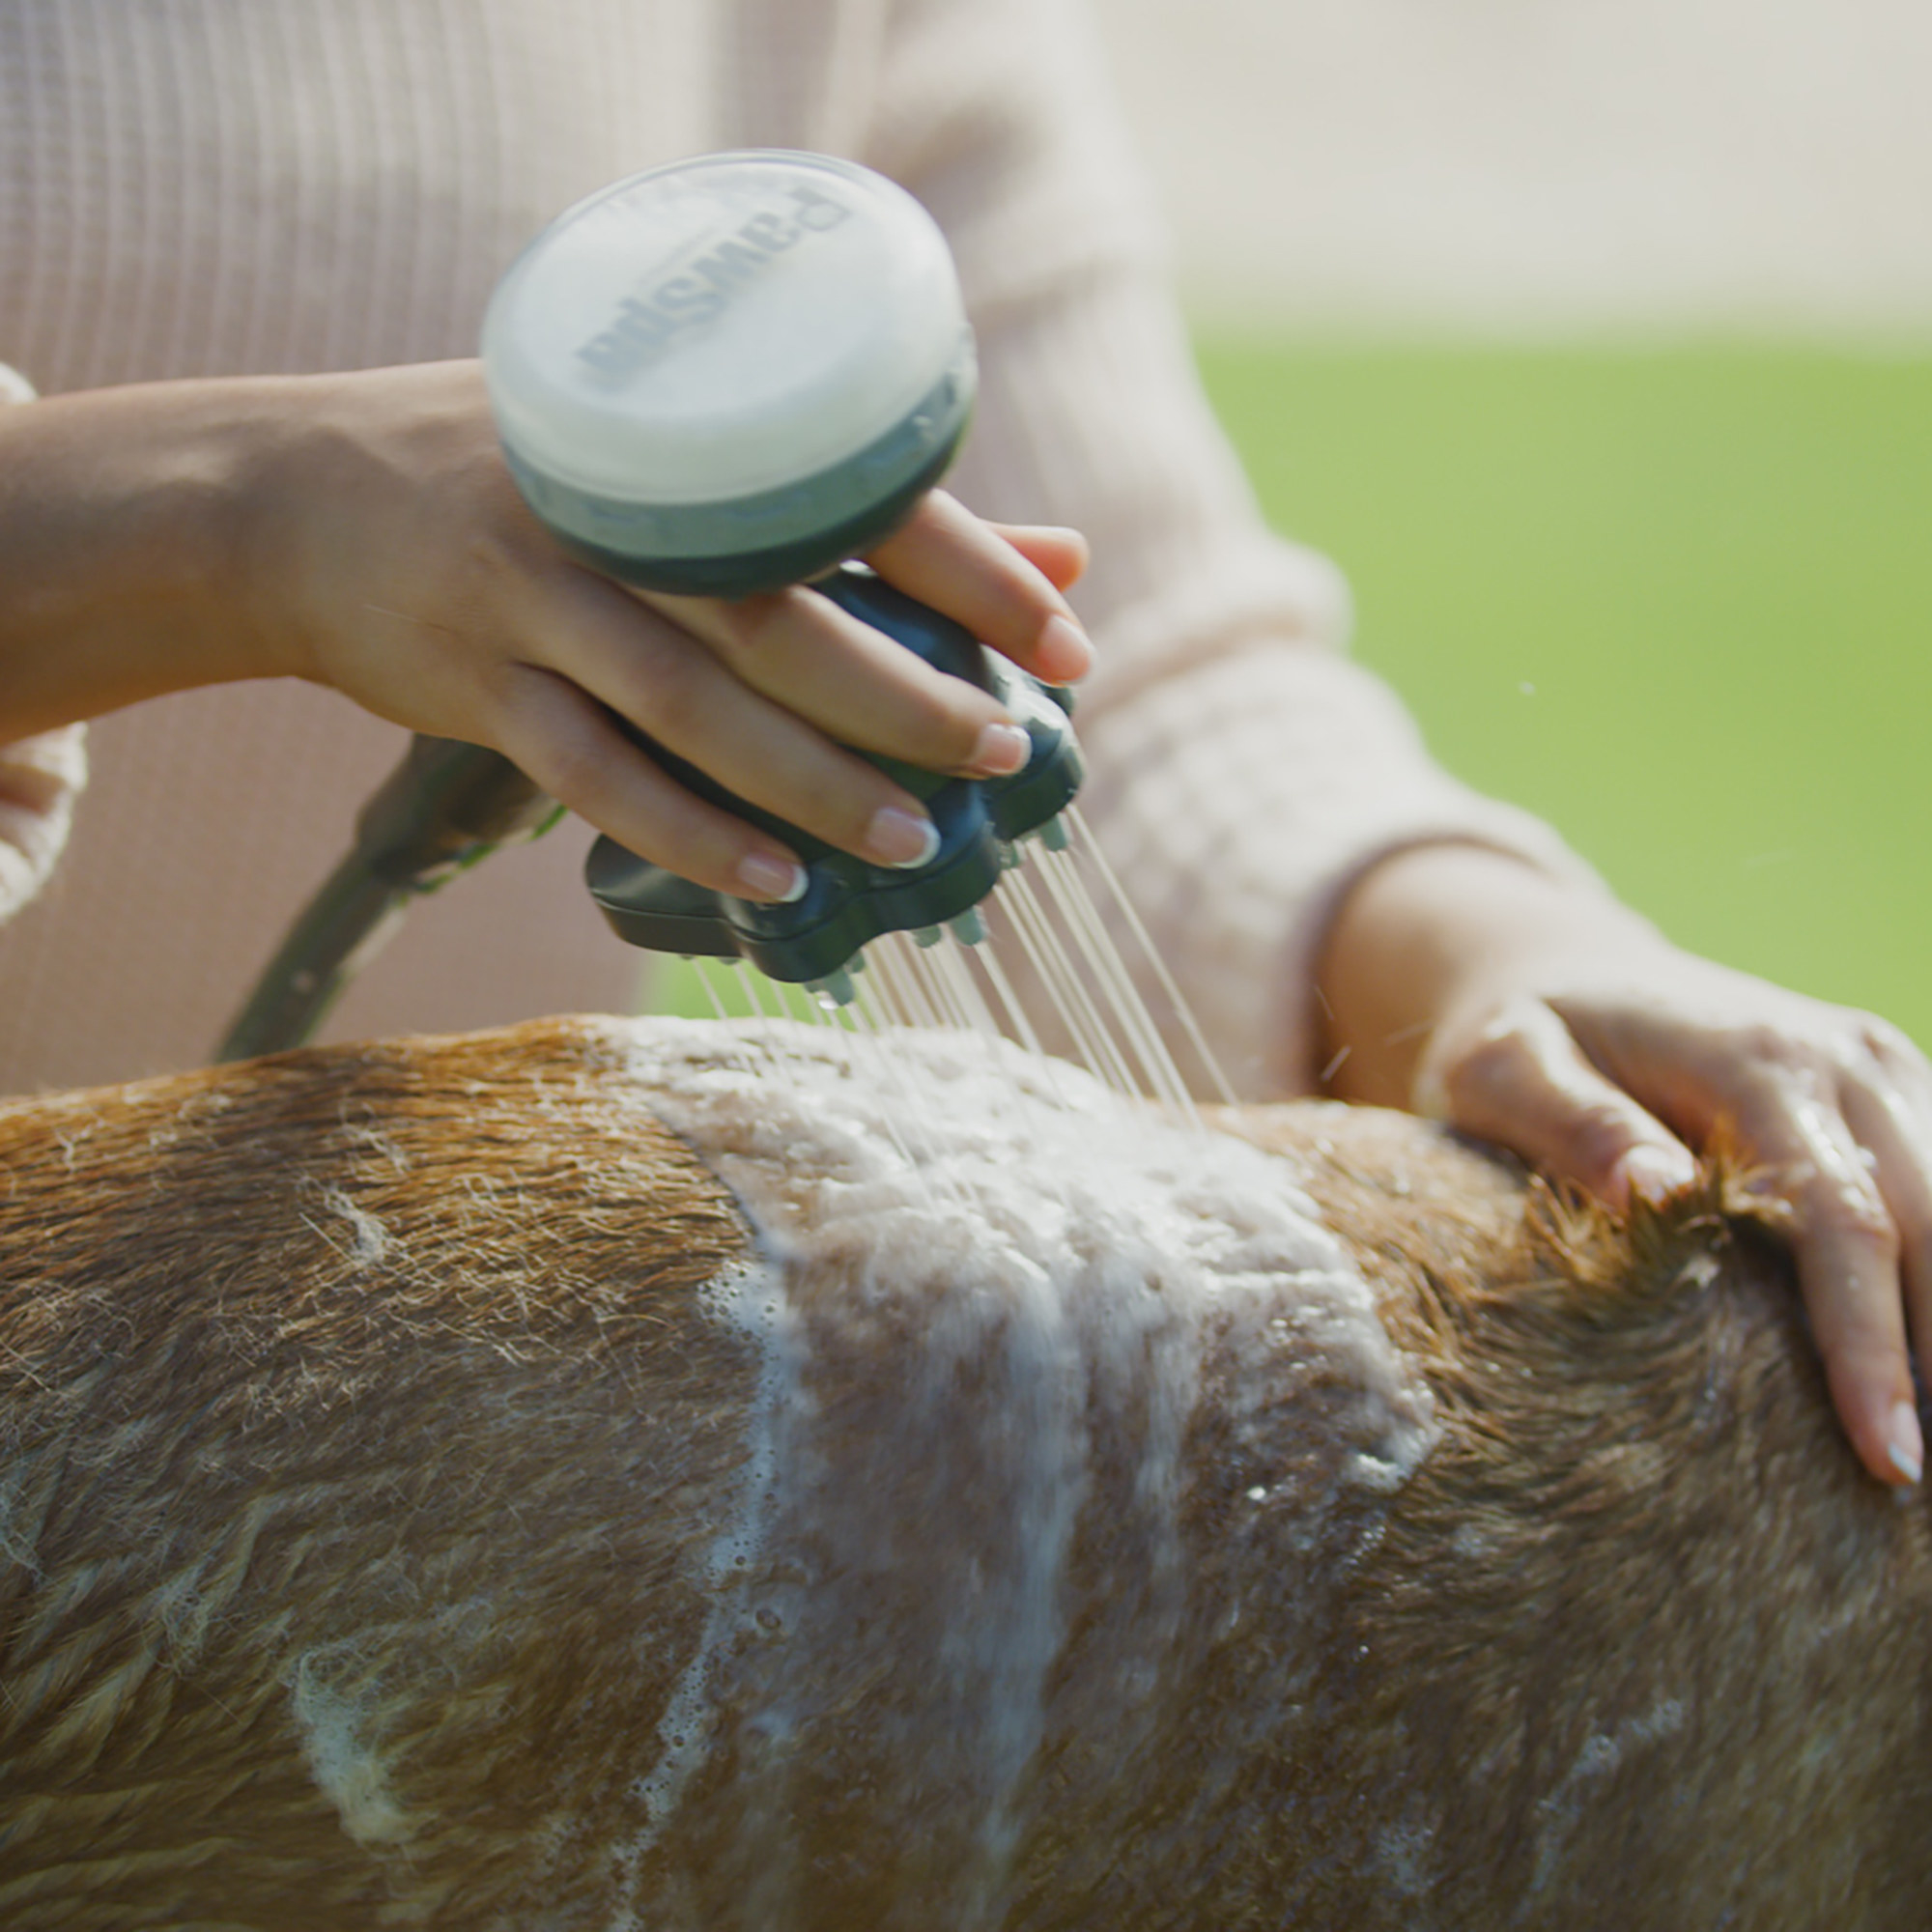 A model washes a dog with the shampoo on